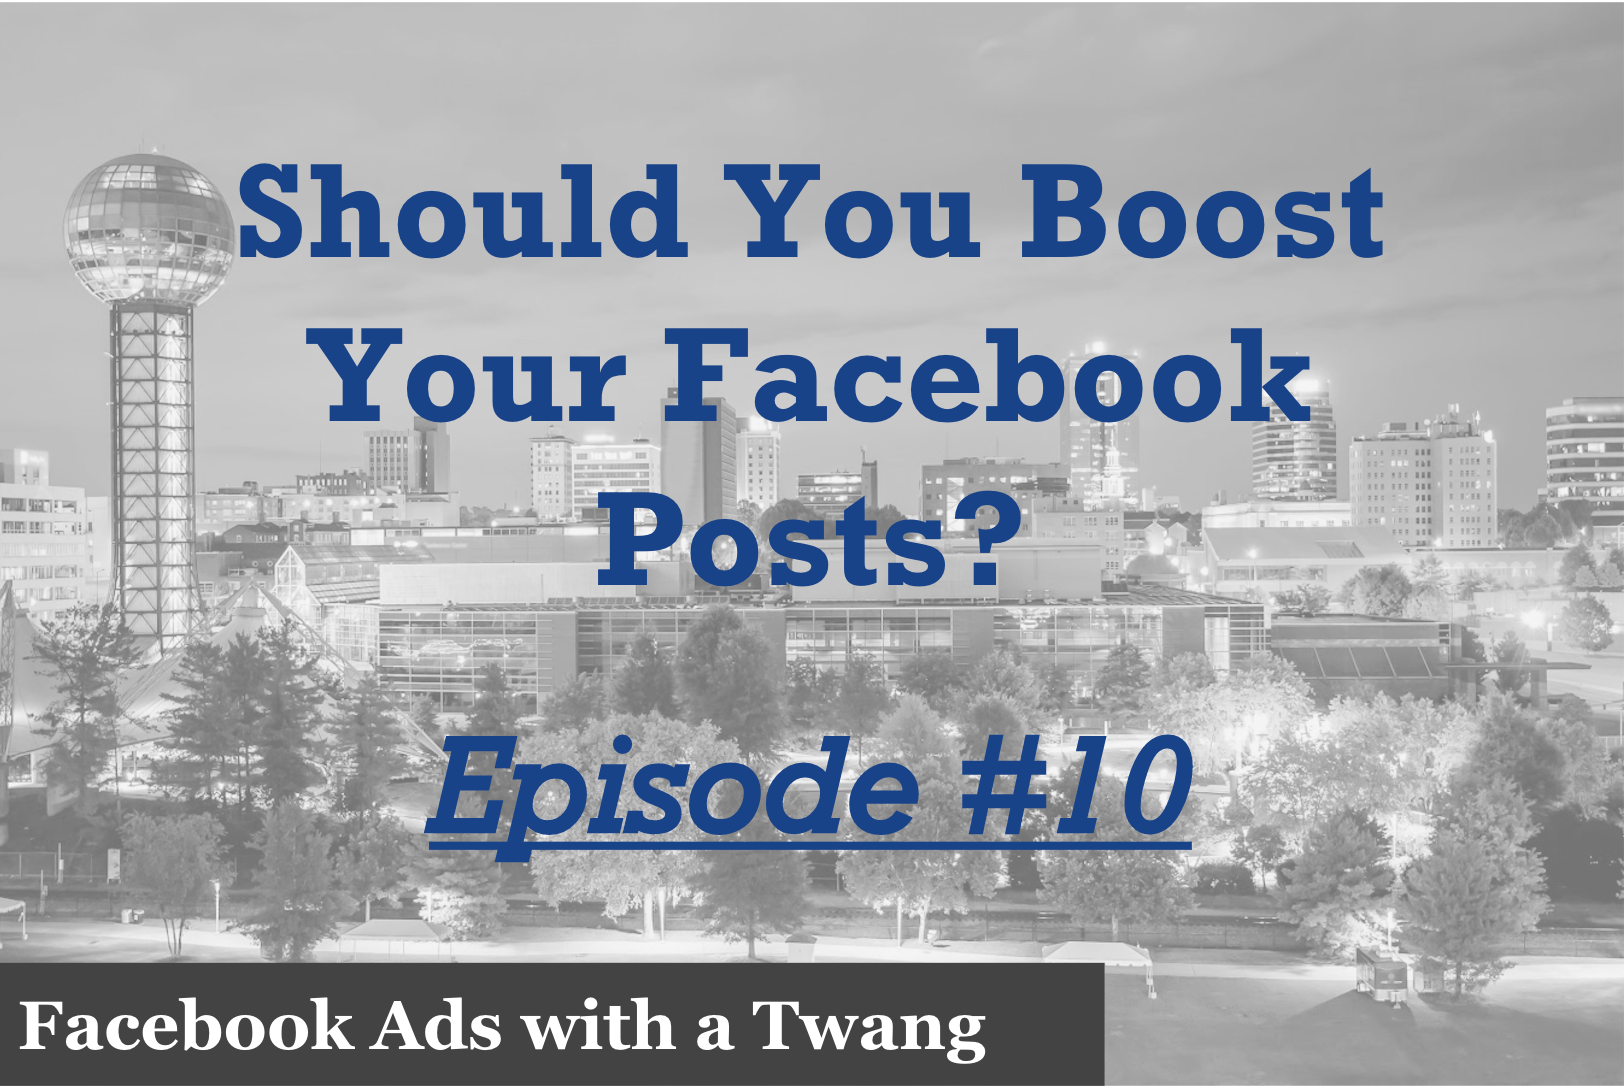 Episode 10 – Should you boost your Facebook posts?